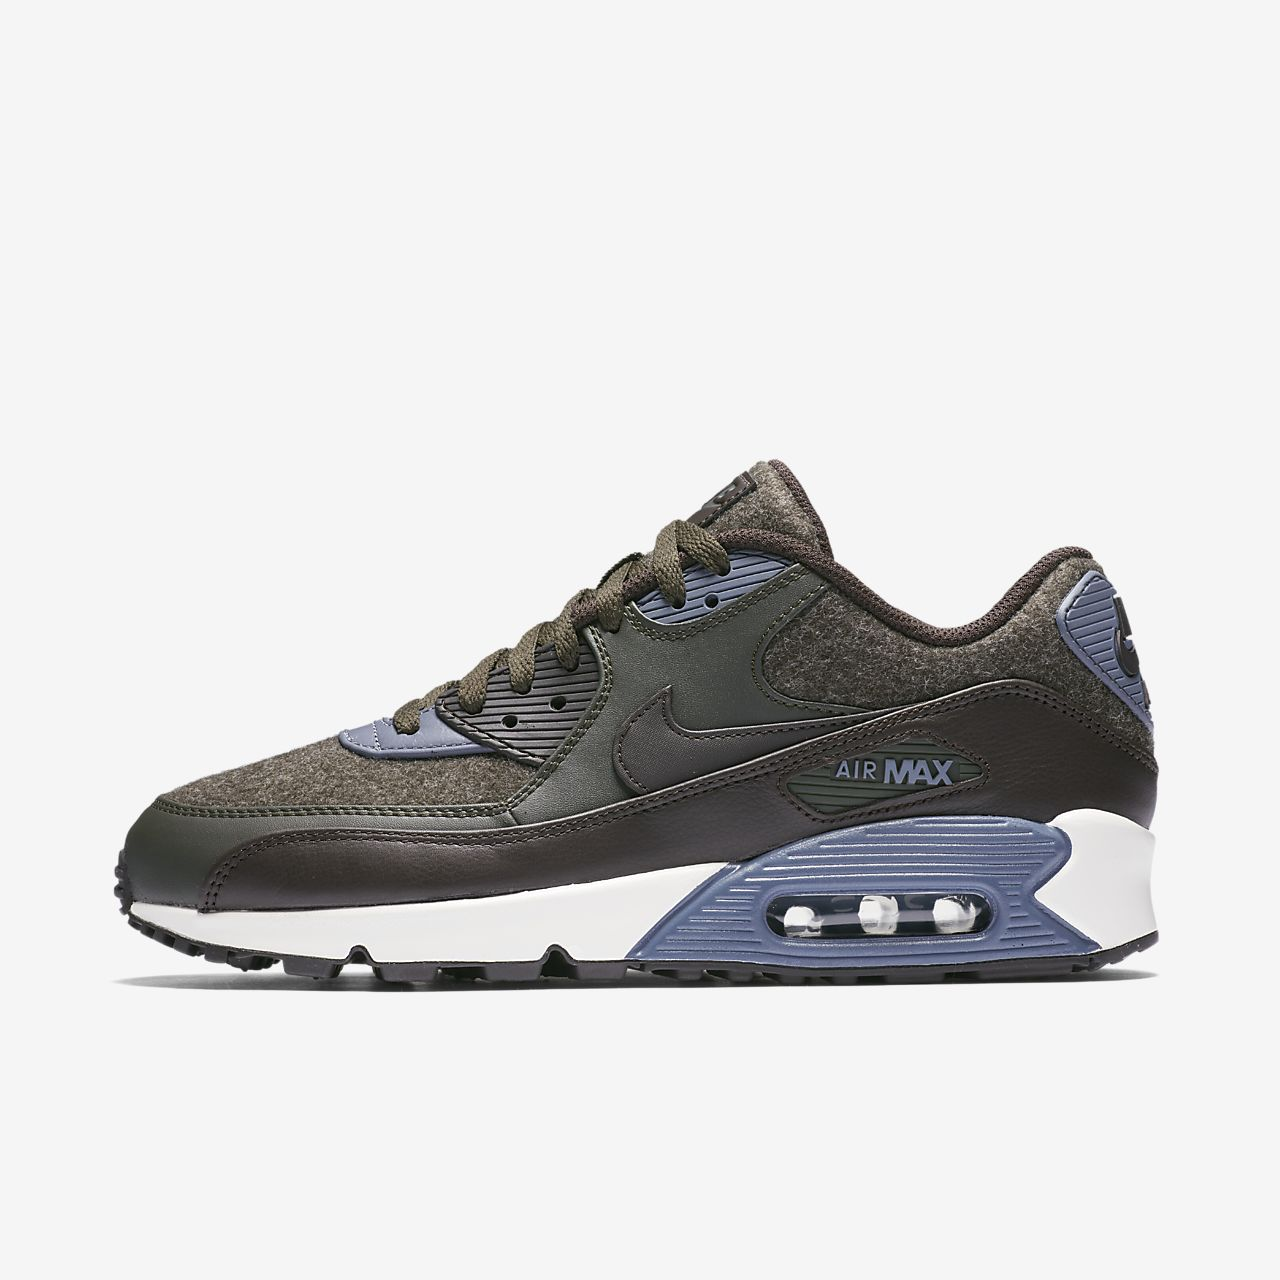 nike air max 90 premium mens leather shoe